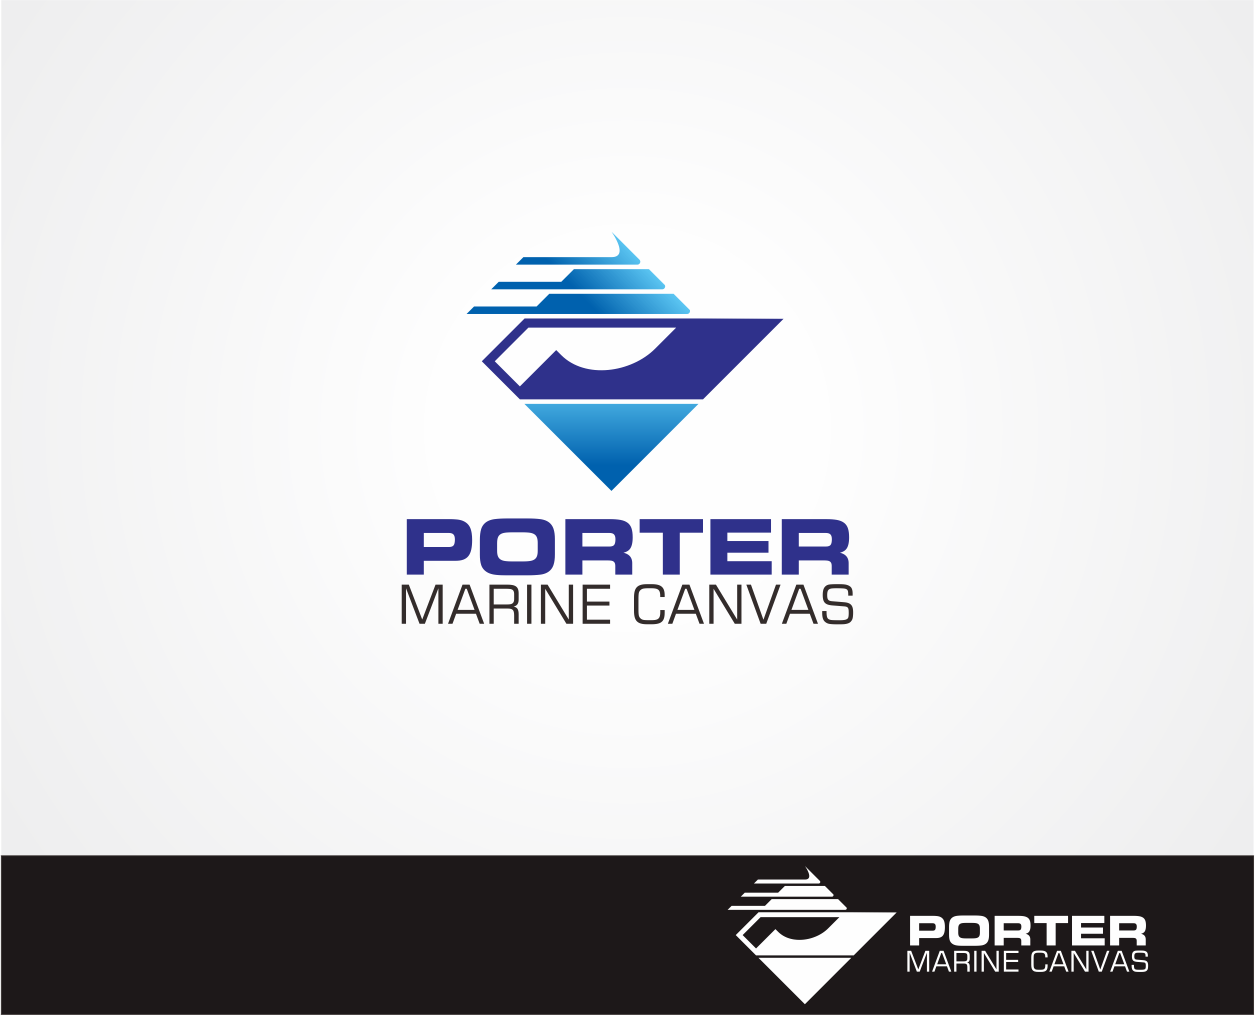 Logo Design by Armada Jamaluddin - Entry No. 134 in the Logo Design Contest Imaginative Logo Design for Porter Marine Canvas.